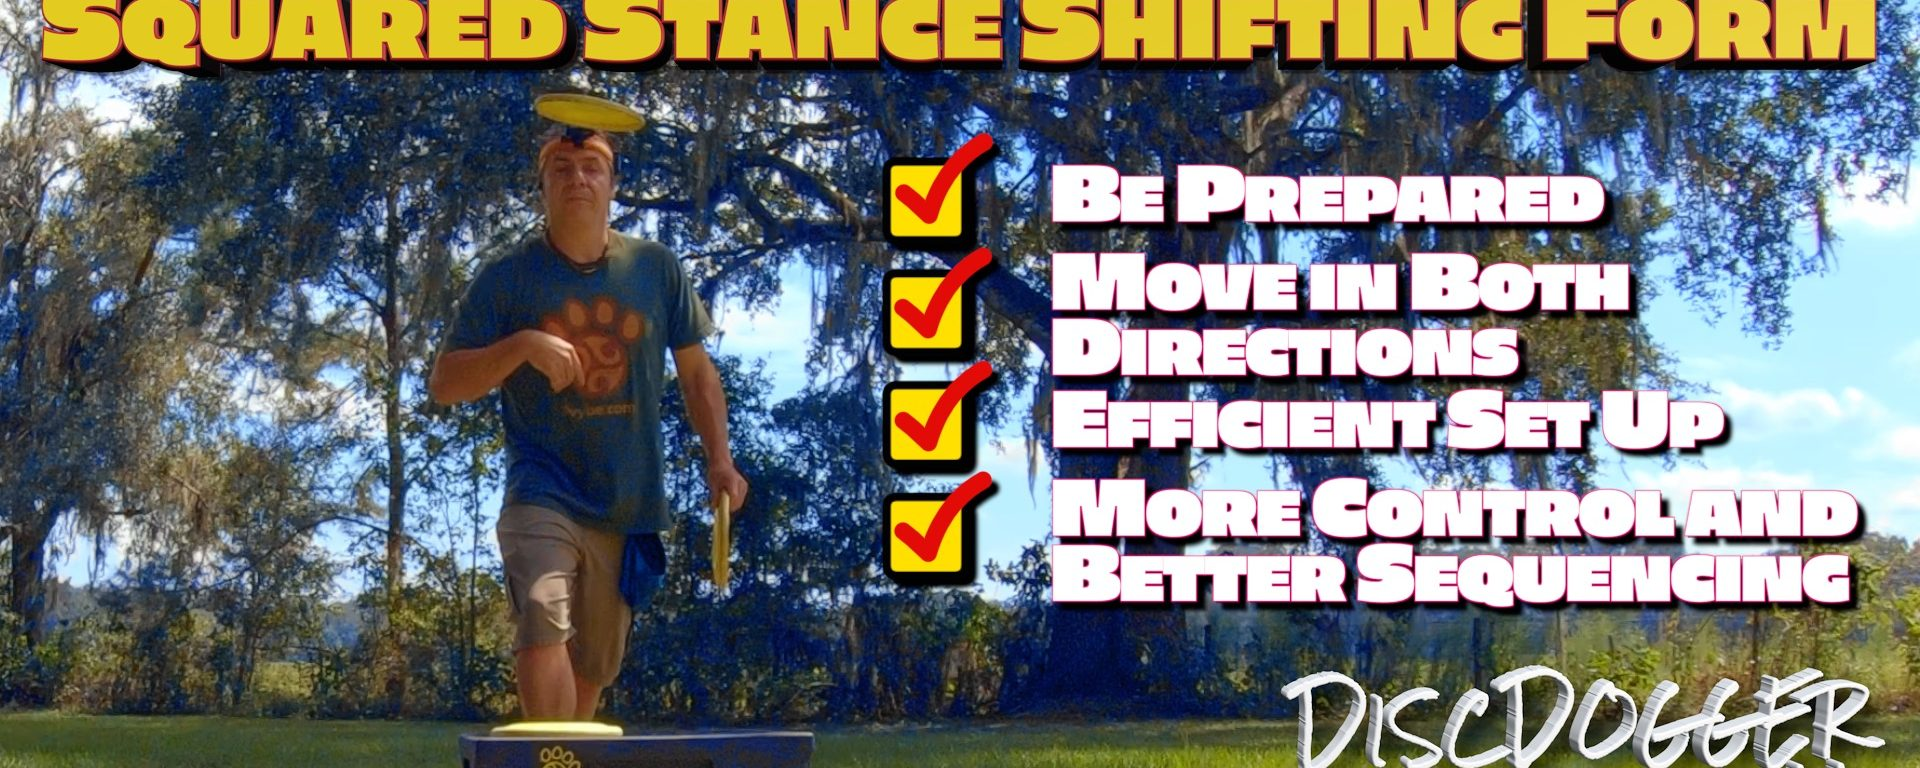 Better Interior Team Movement | Squared Stance Shifting Form